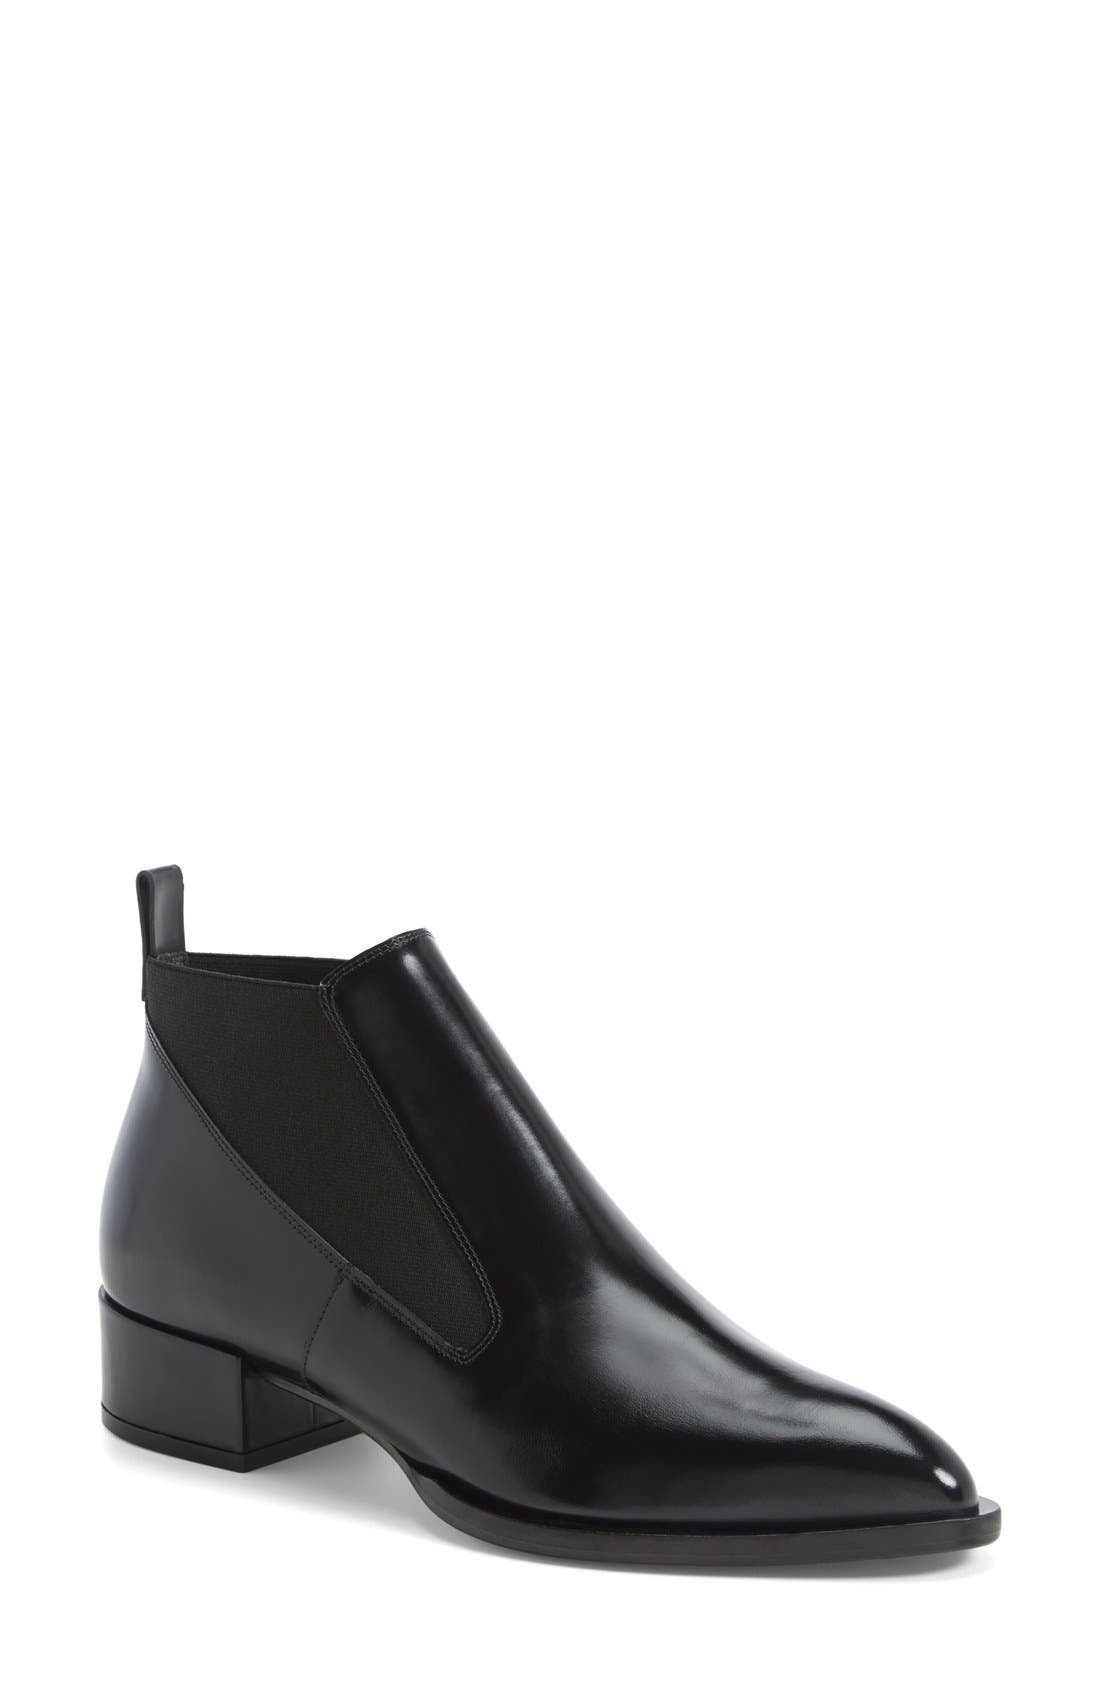 Alternate Image 1 Selected - Vince 'Yarrow' Leather Chelsea Ankle Boot (Women)